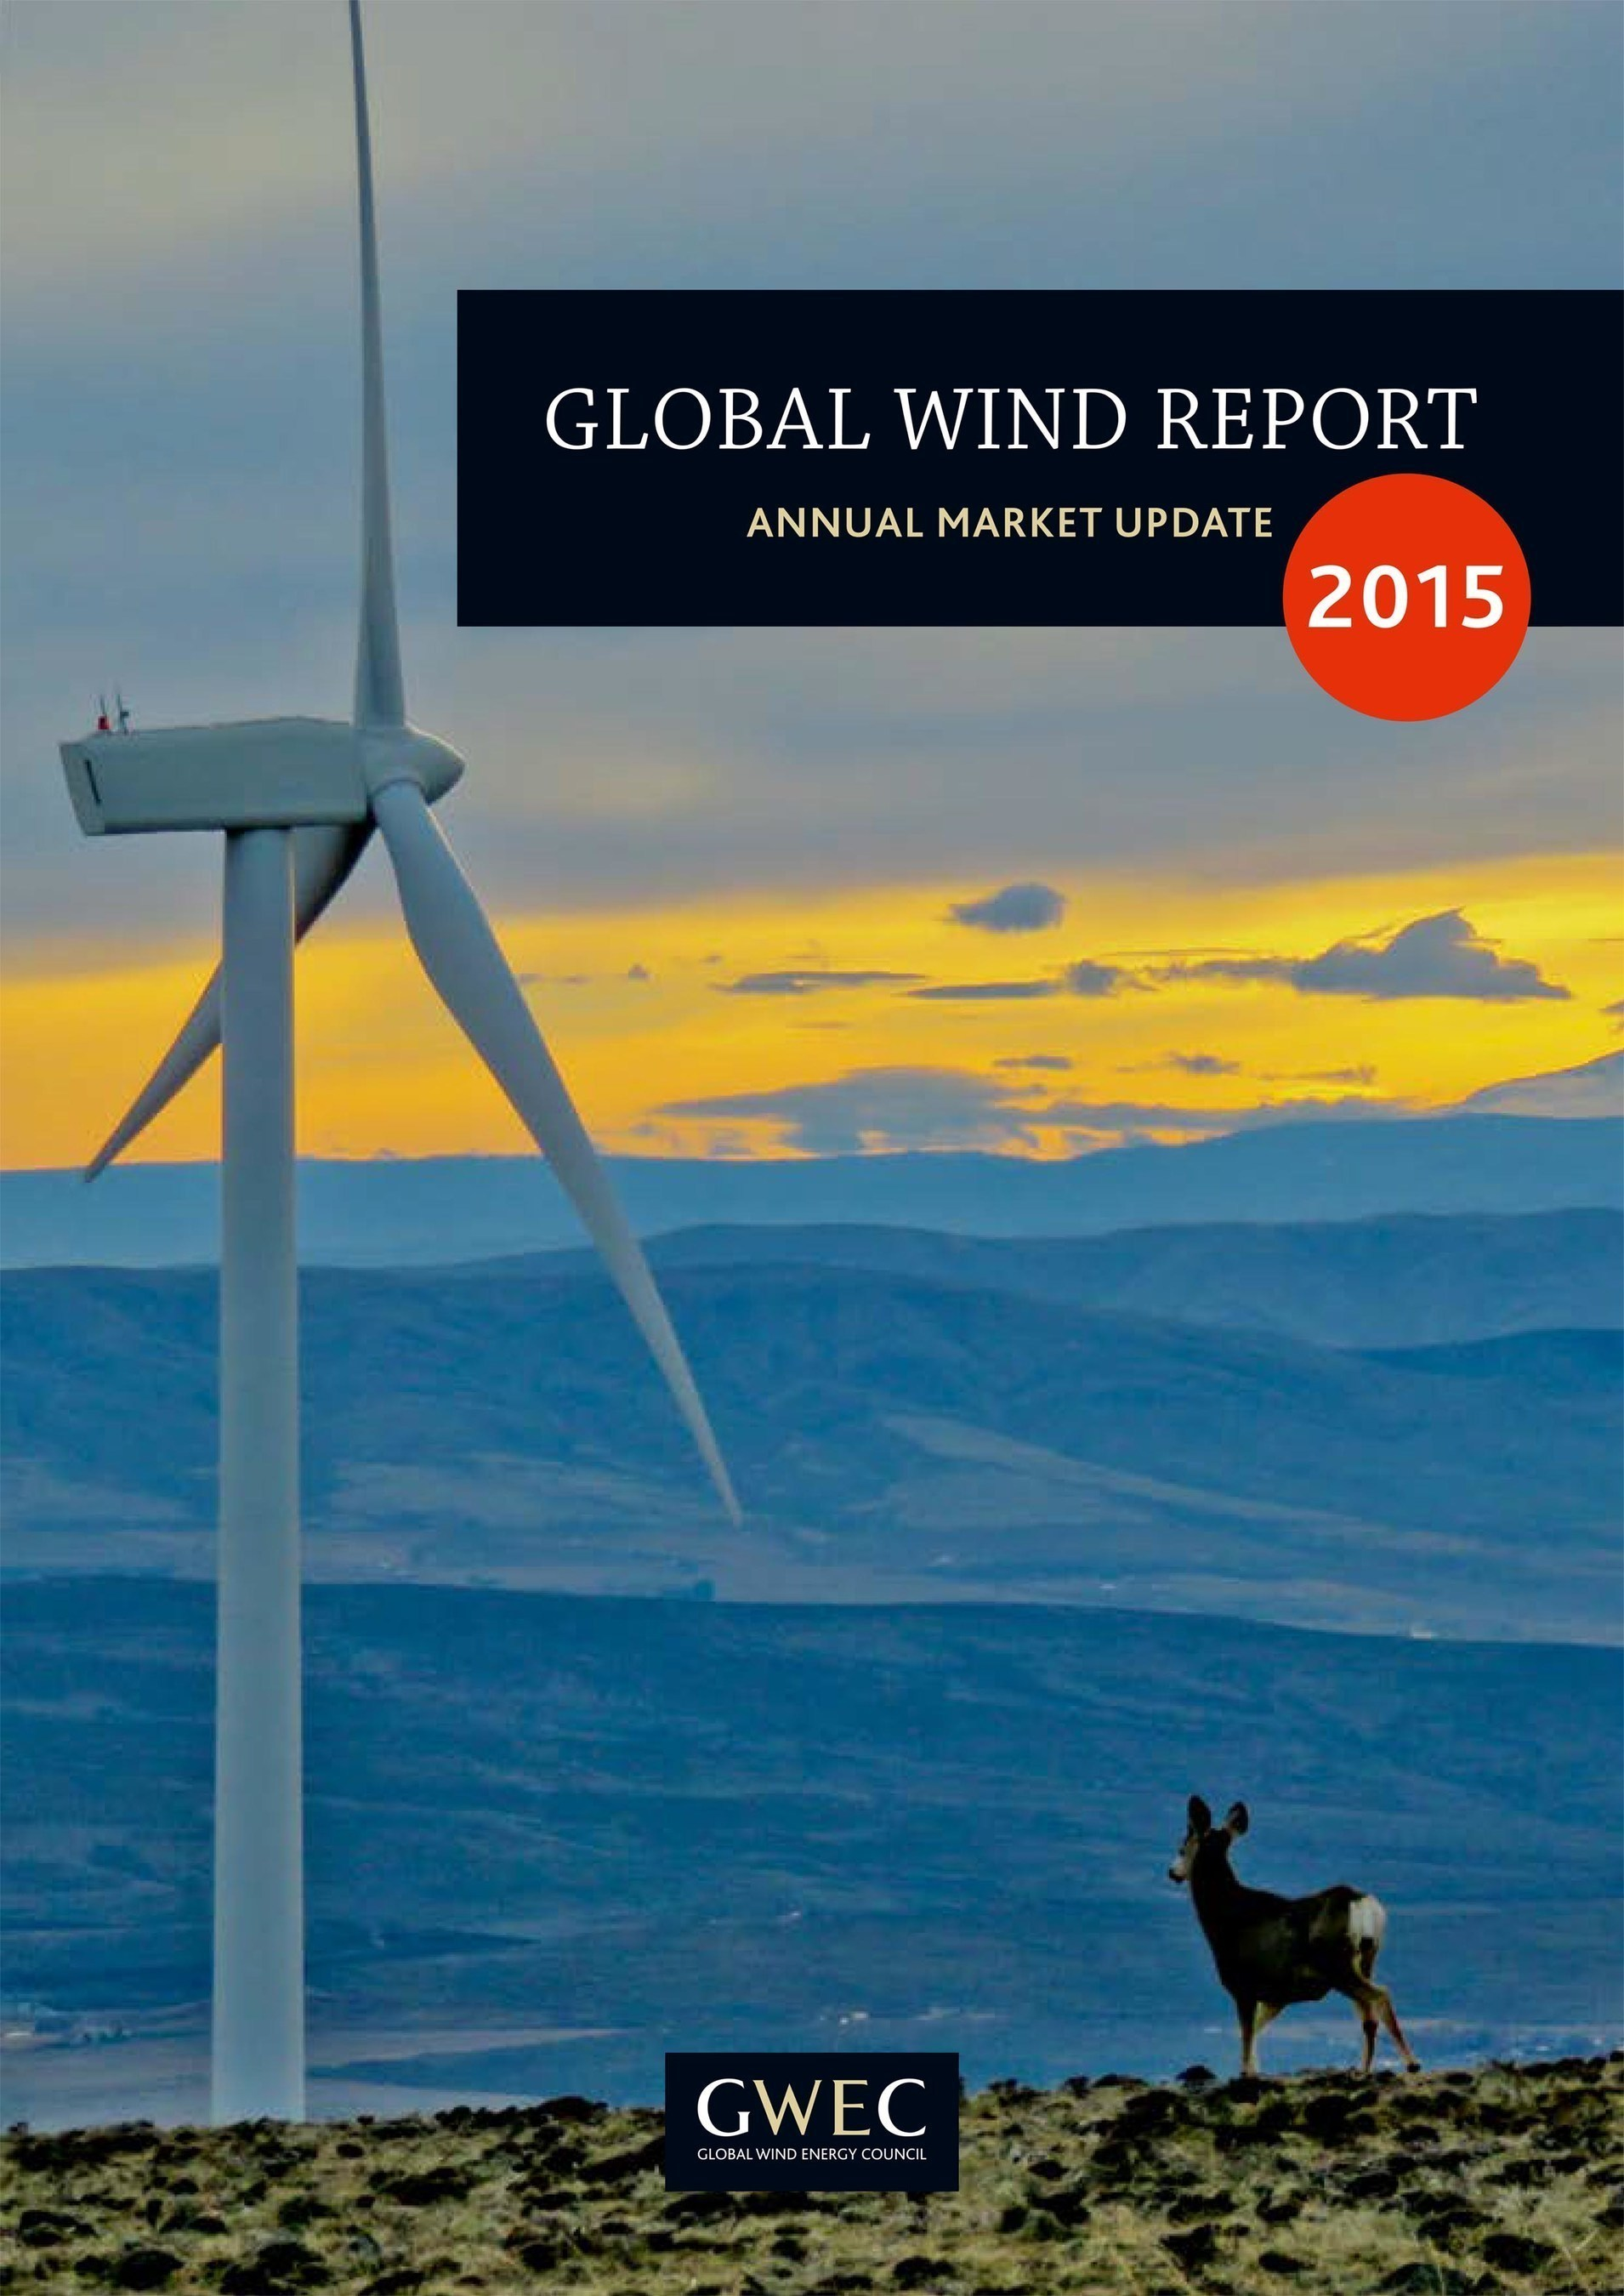 GWEC's Global Wind Report released